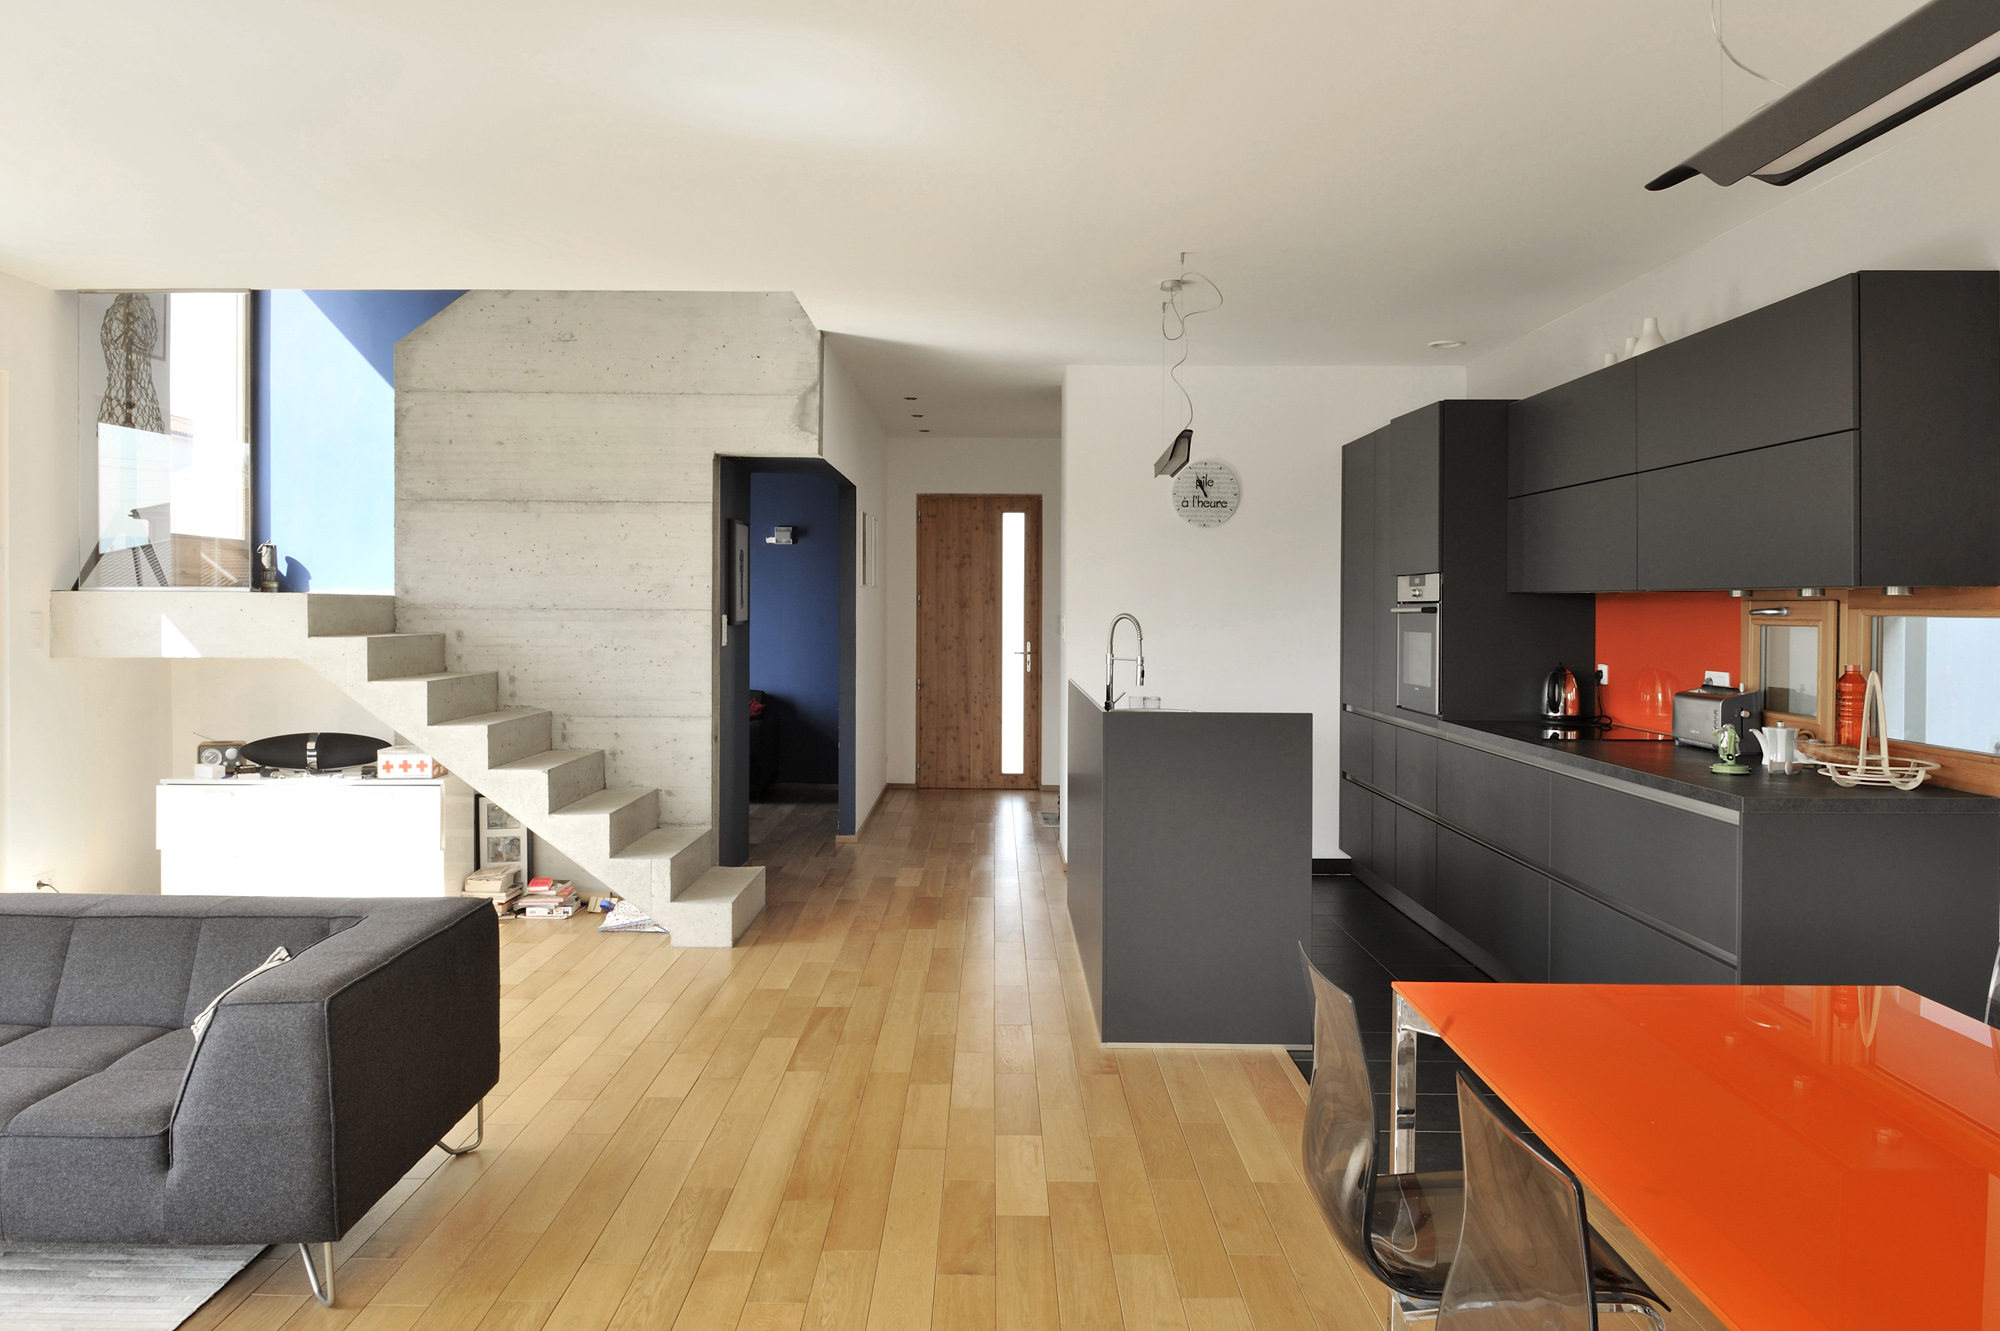 maison basse energie lucenay effinergie fabien perret architecte lyon. Black Bedroom Furniture Sets. Home Design Ideas